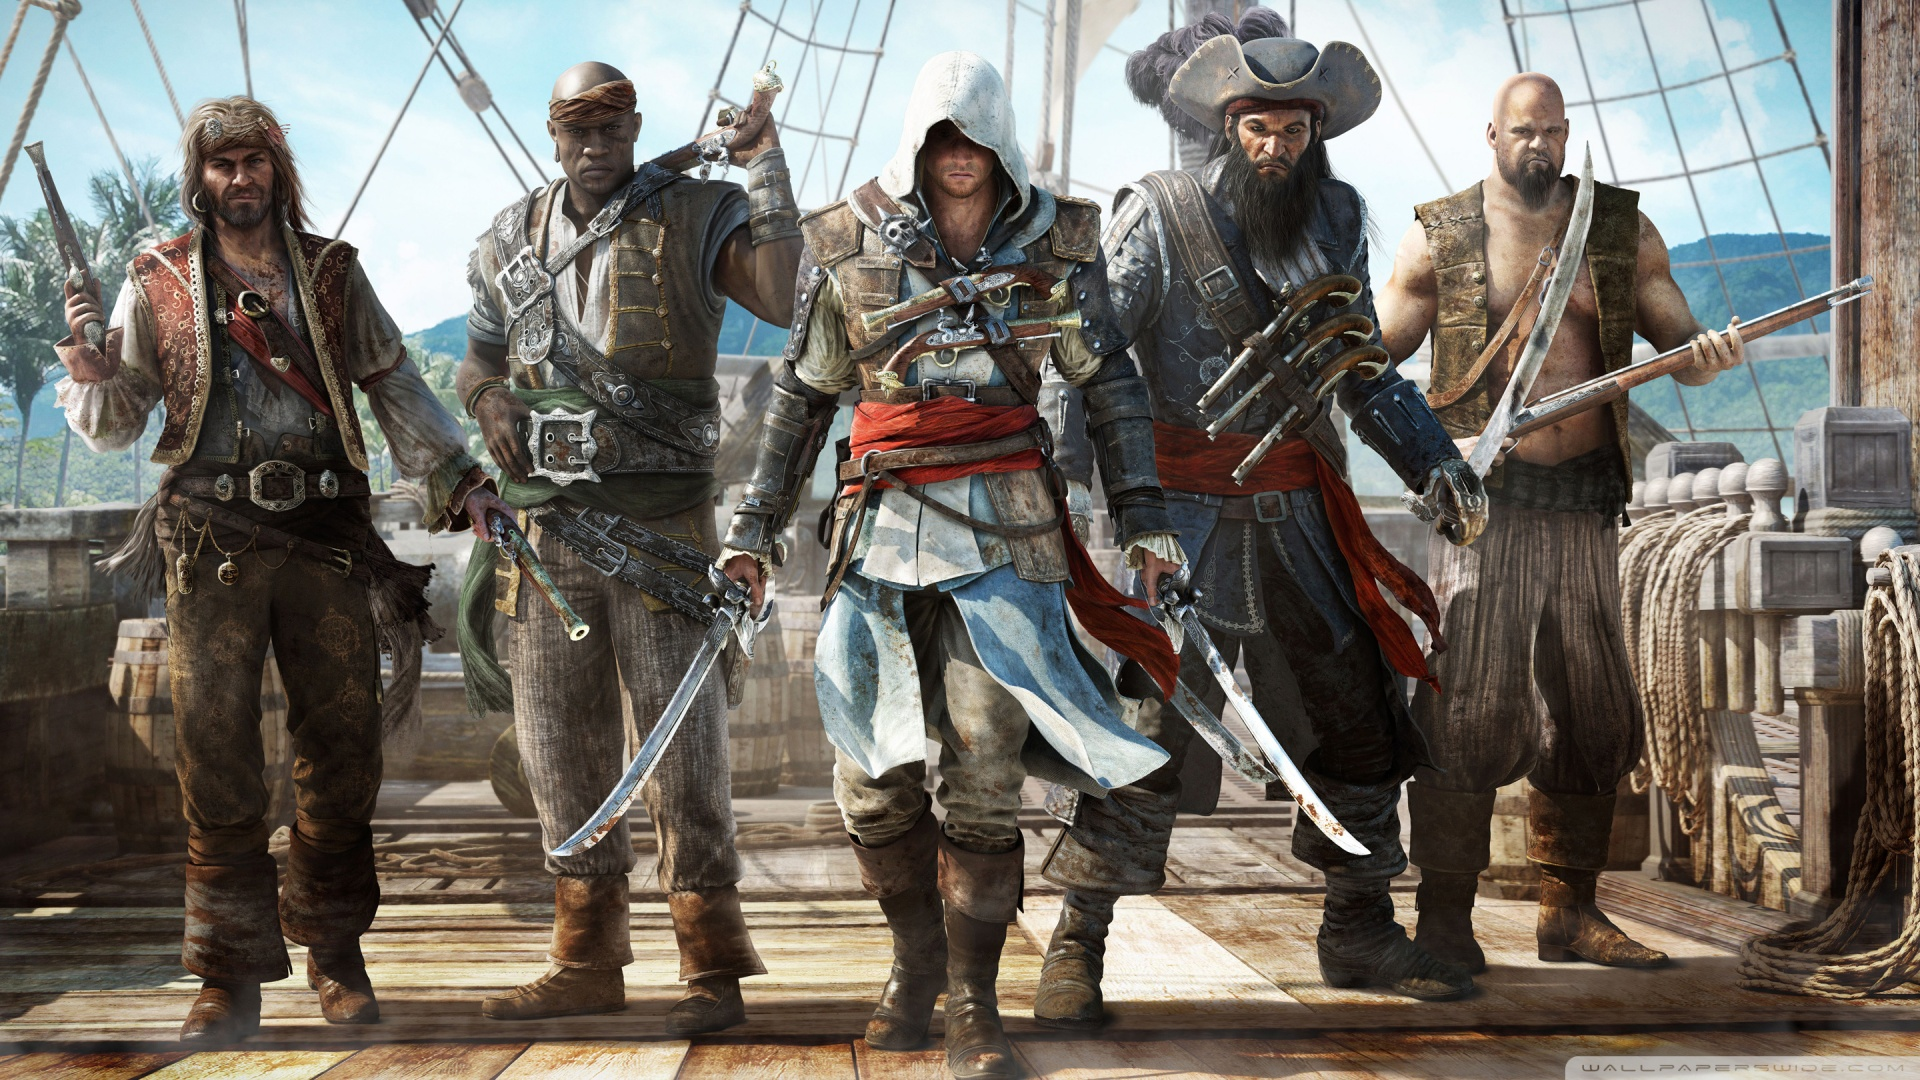 Assassins Creed IV Black Flag HD desktop wallpaper : High